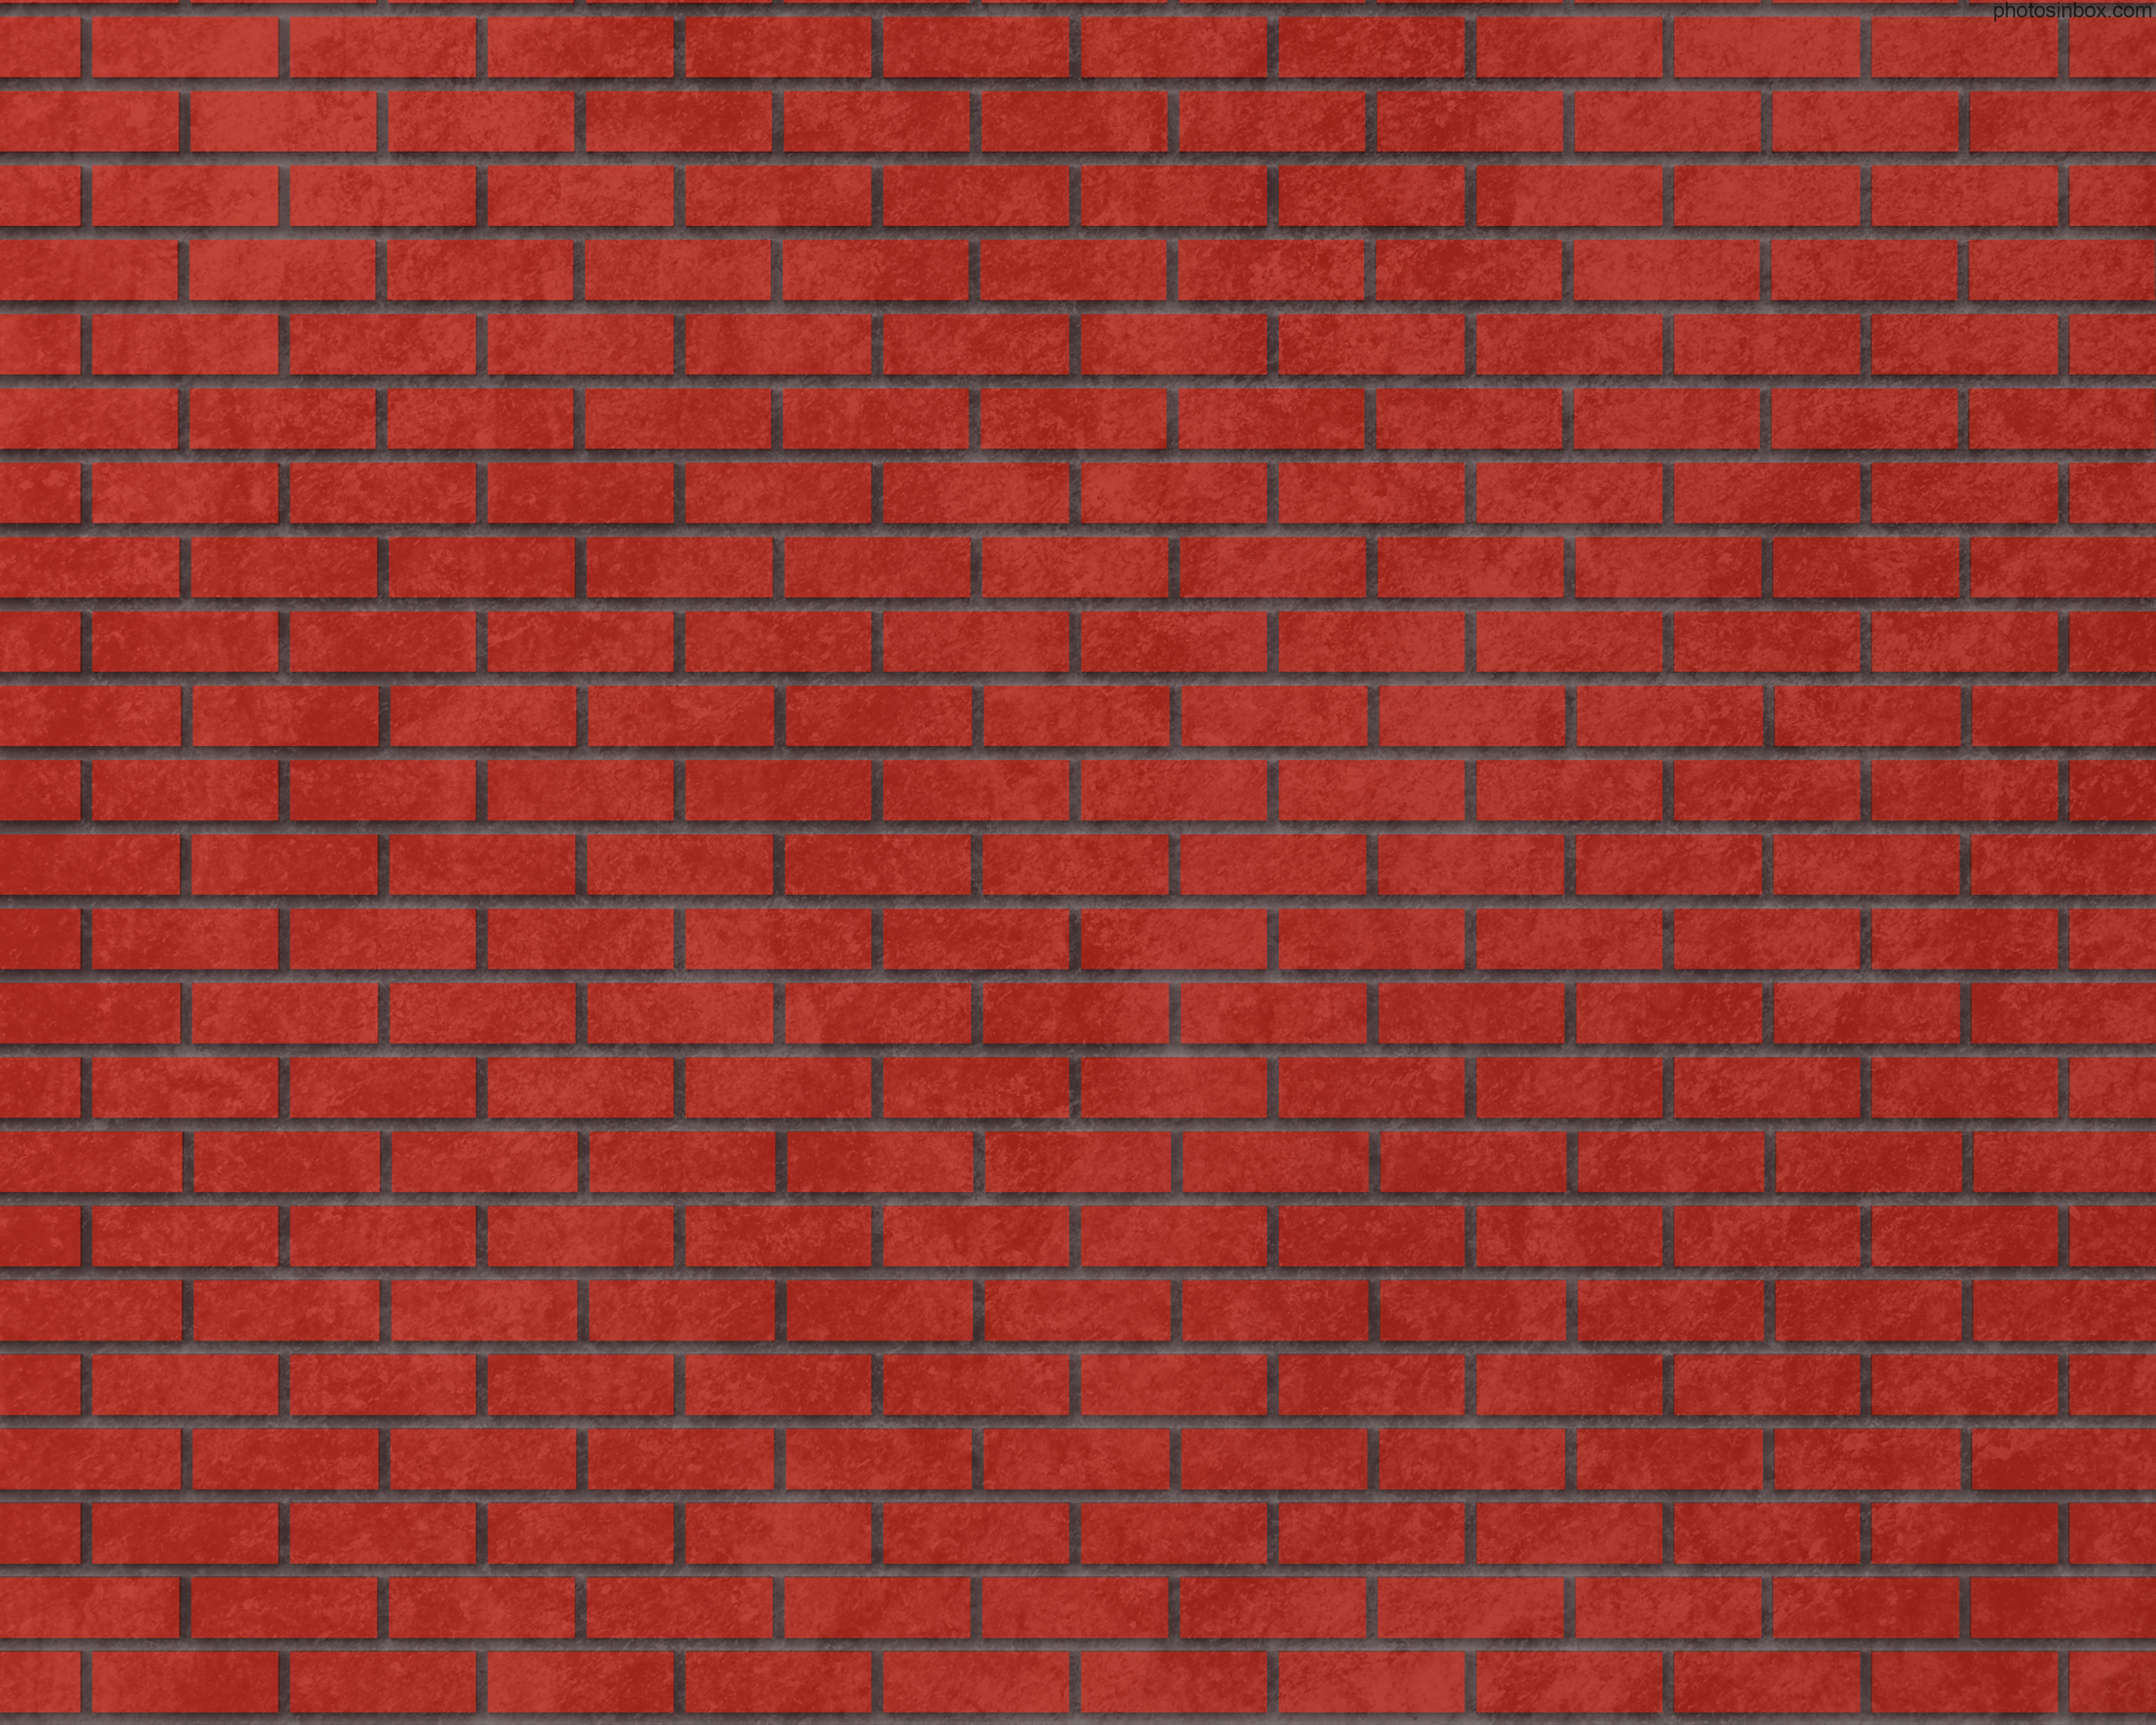 red brick wall texture red bricks brick wall texture